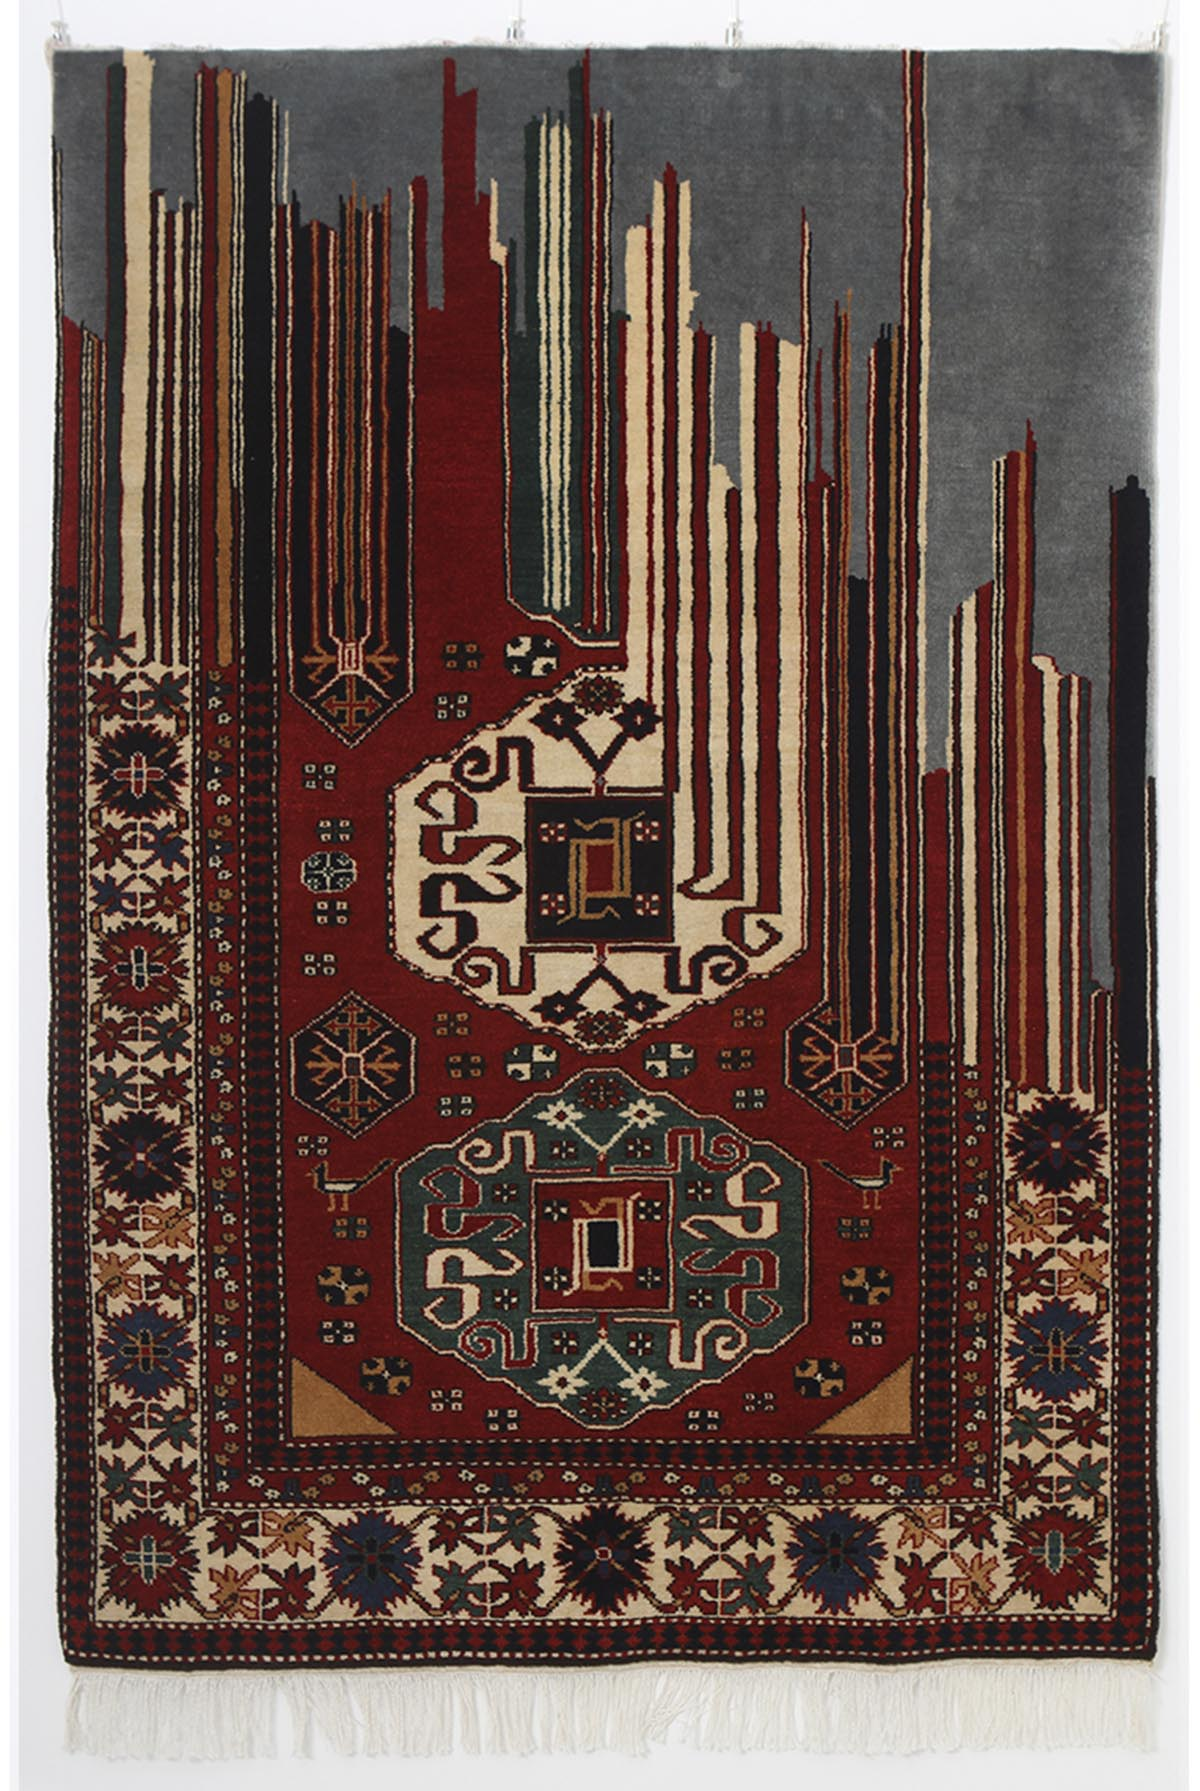 Faig Ahmed's modern interpretations of traditional carpet design -04